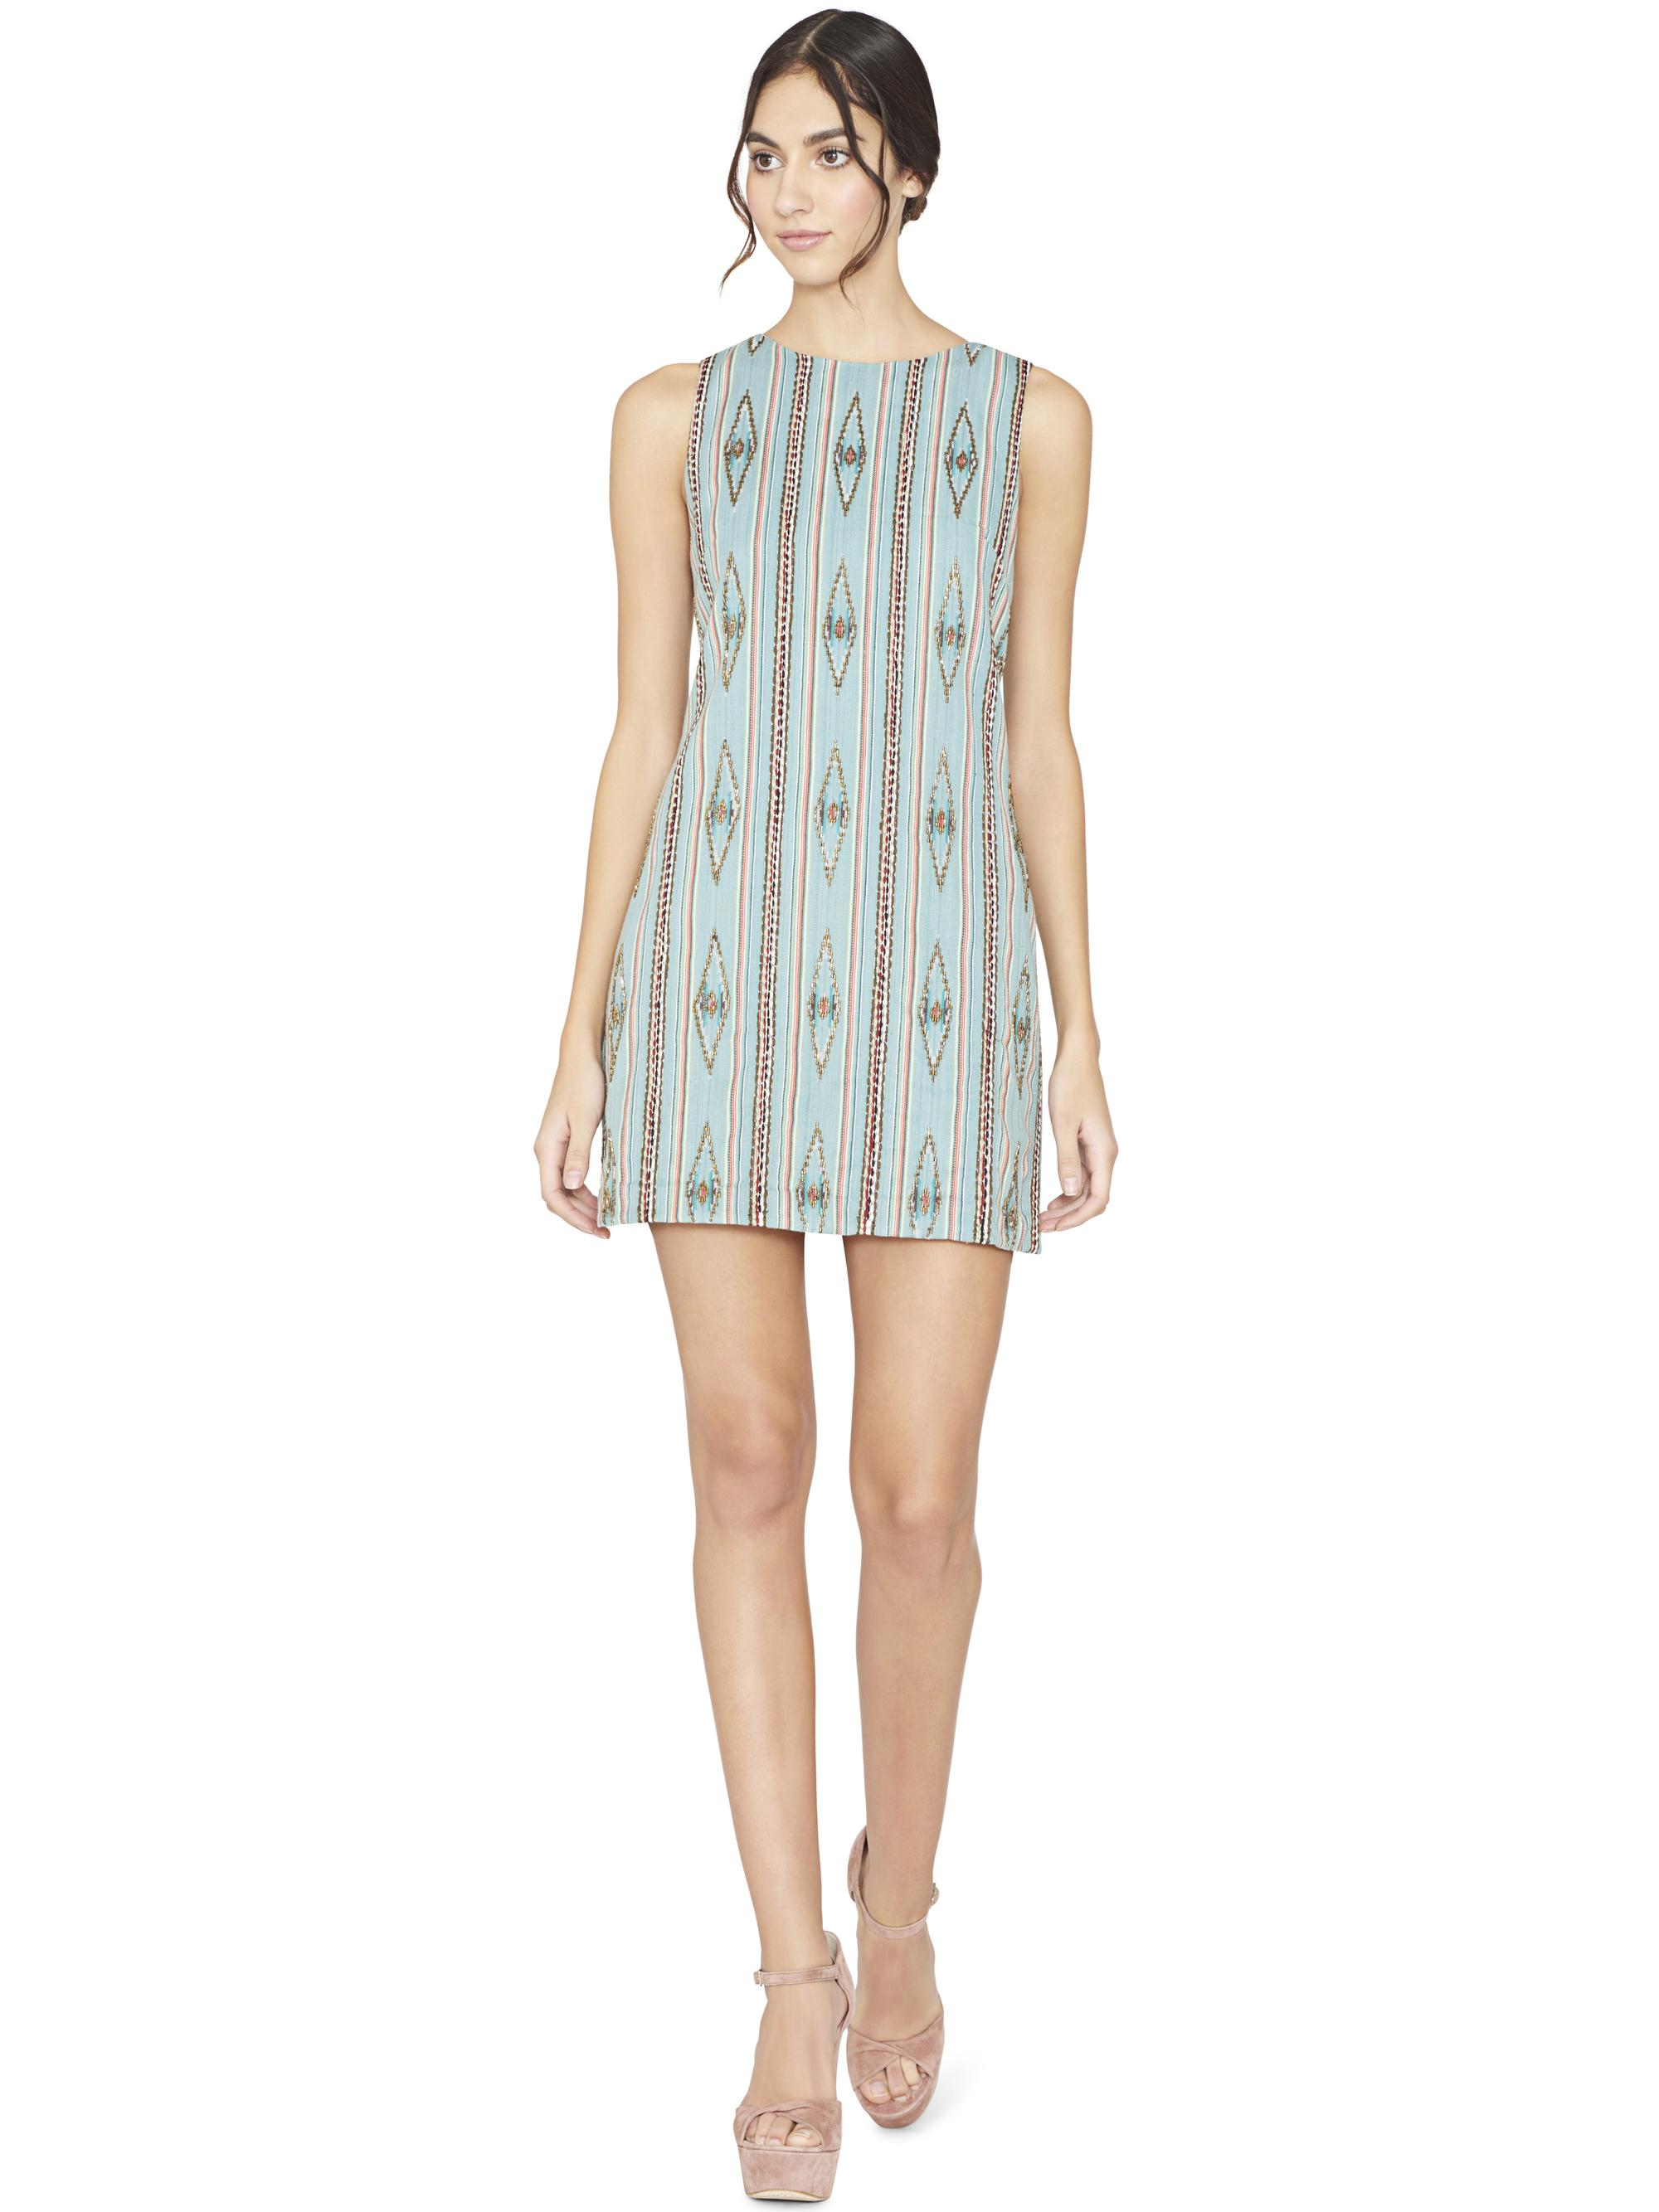 b9e80f8321a Alice + Olivia Clyde Embellished Shift Dress in Blue - Lyst